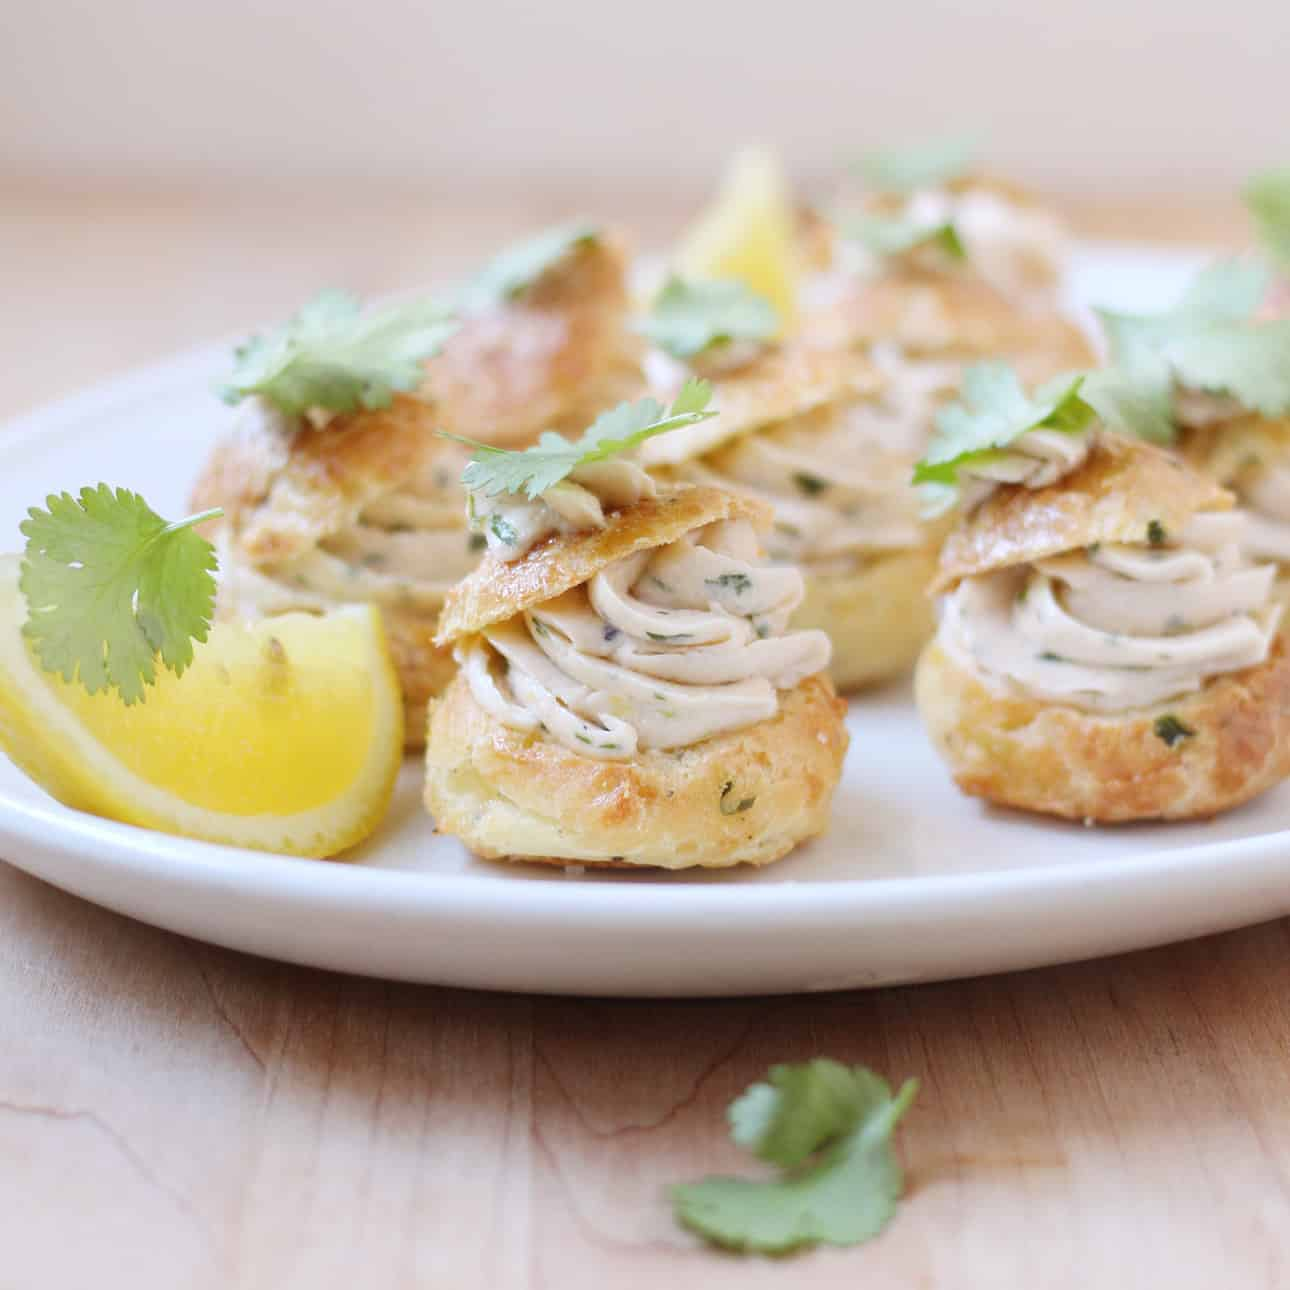 Parmesan Cheese Puffs with Smoked Salmon Mousse